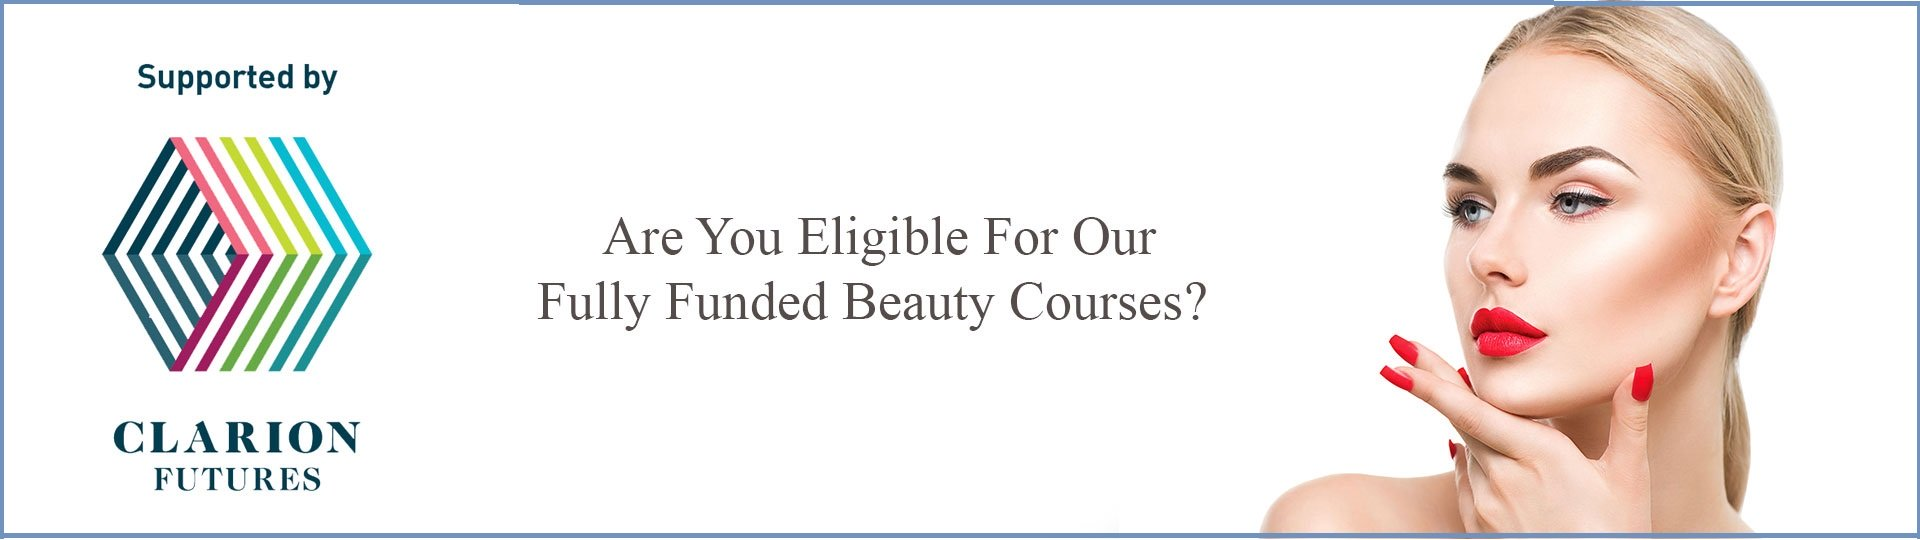 Are You Eligible For Our Fully Funded Beauty Courses banner 1